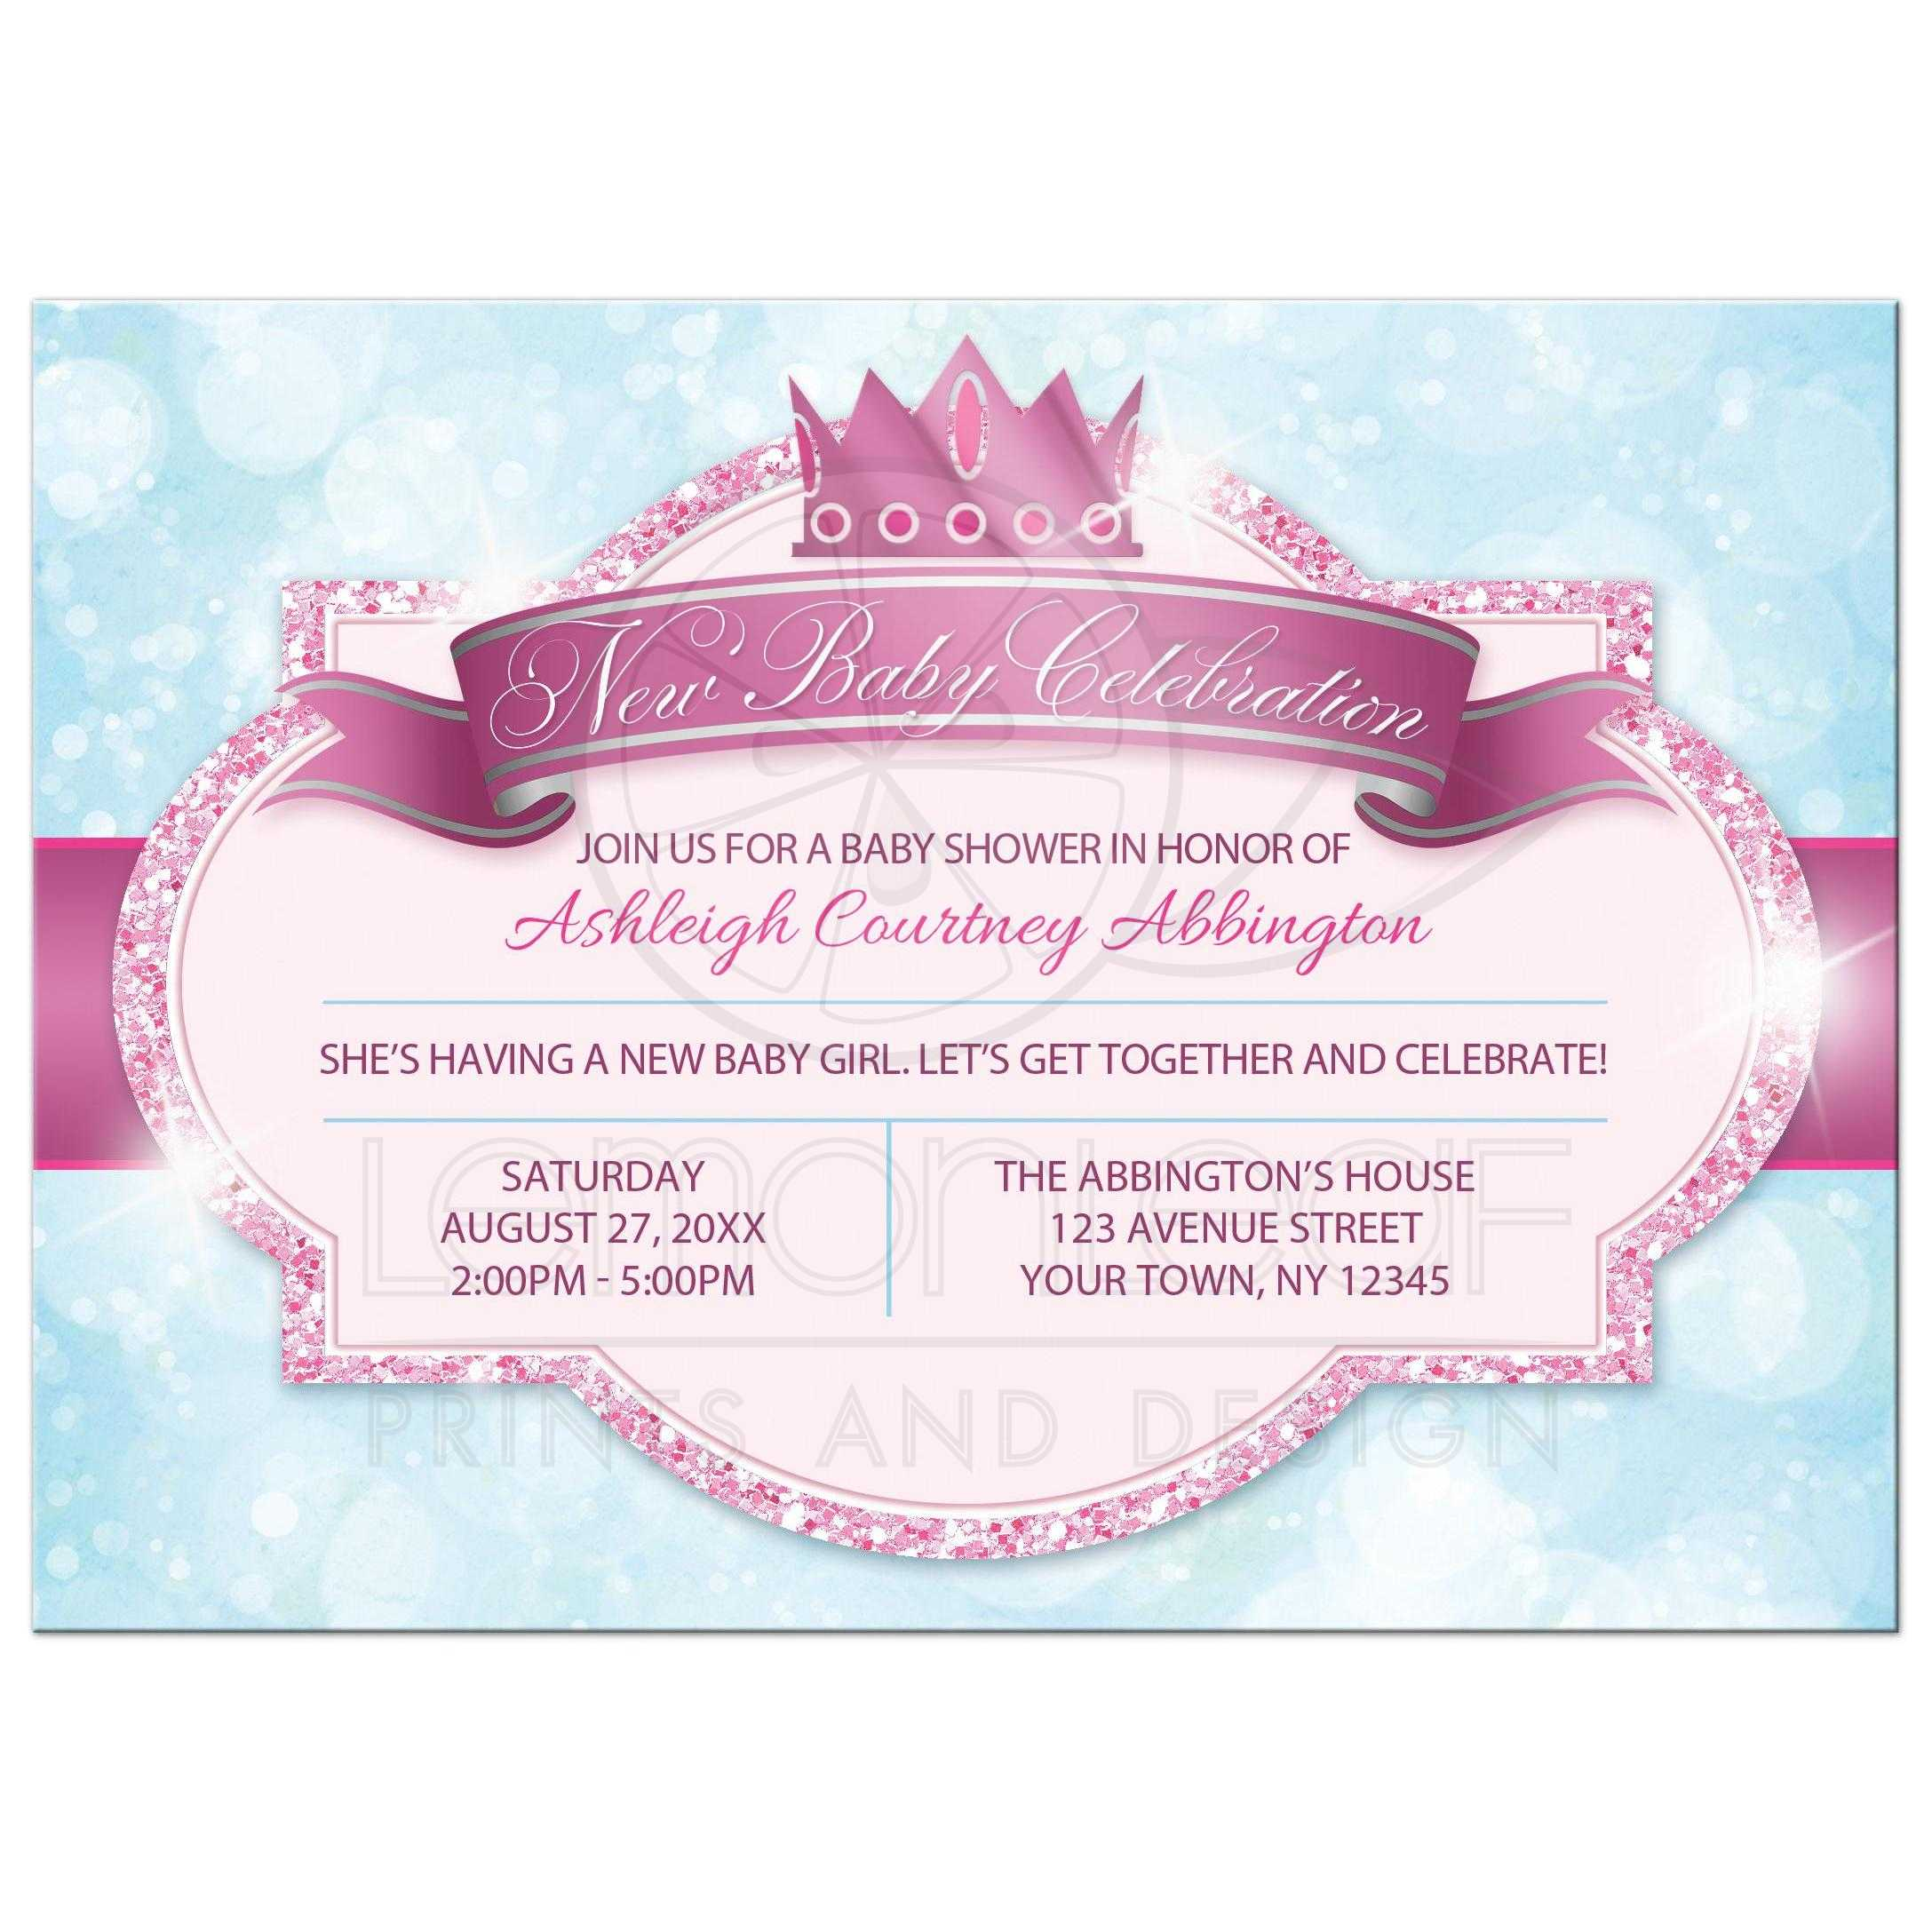 Baby Shower Invitations - Royal Princess Pink Glitter Blue Girls